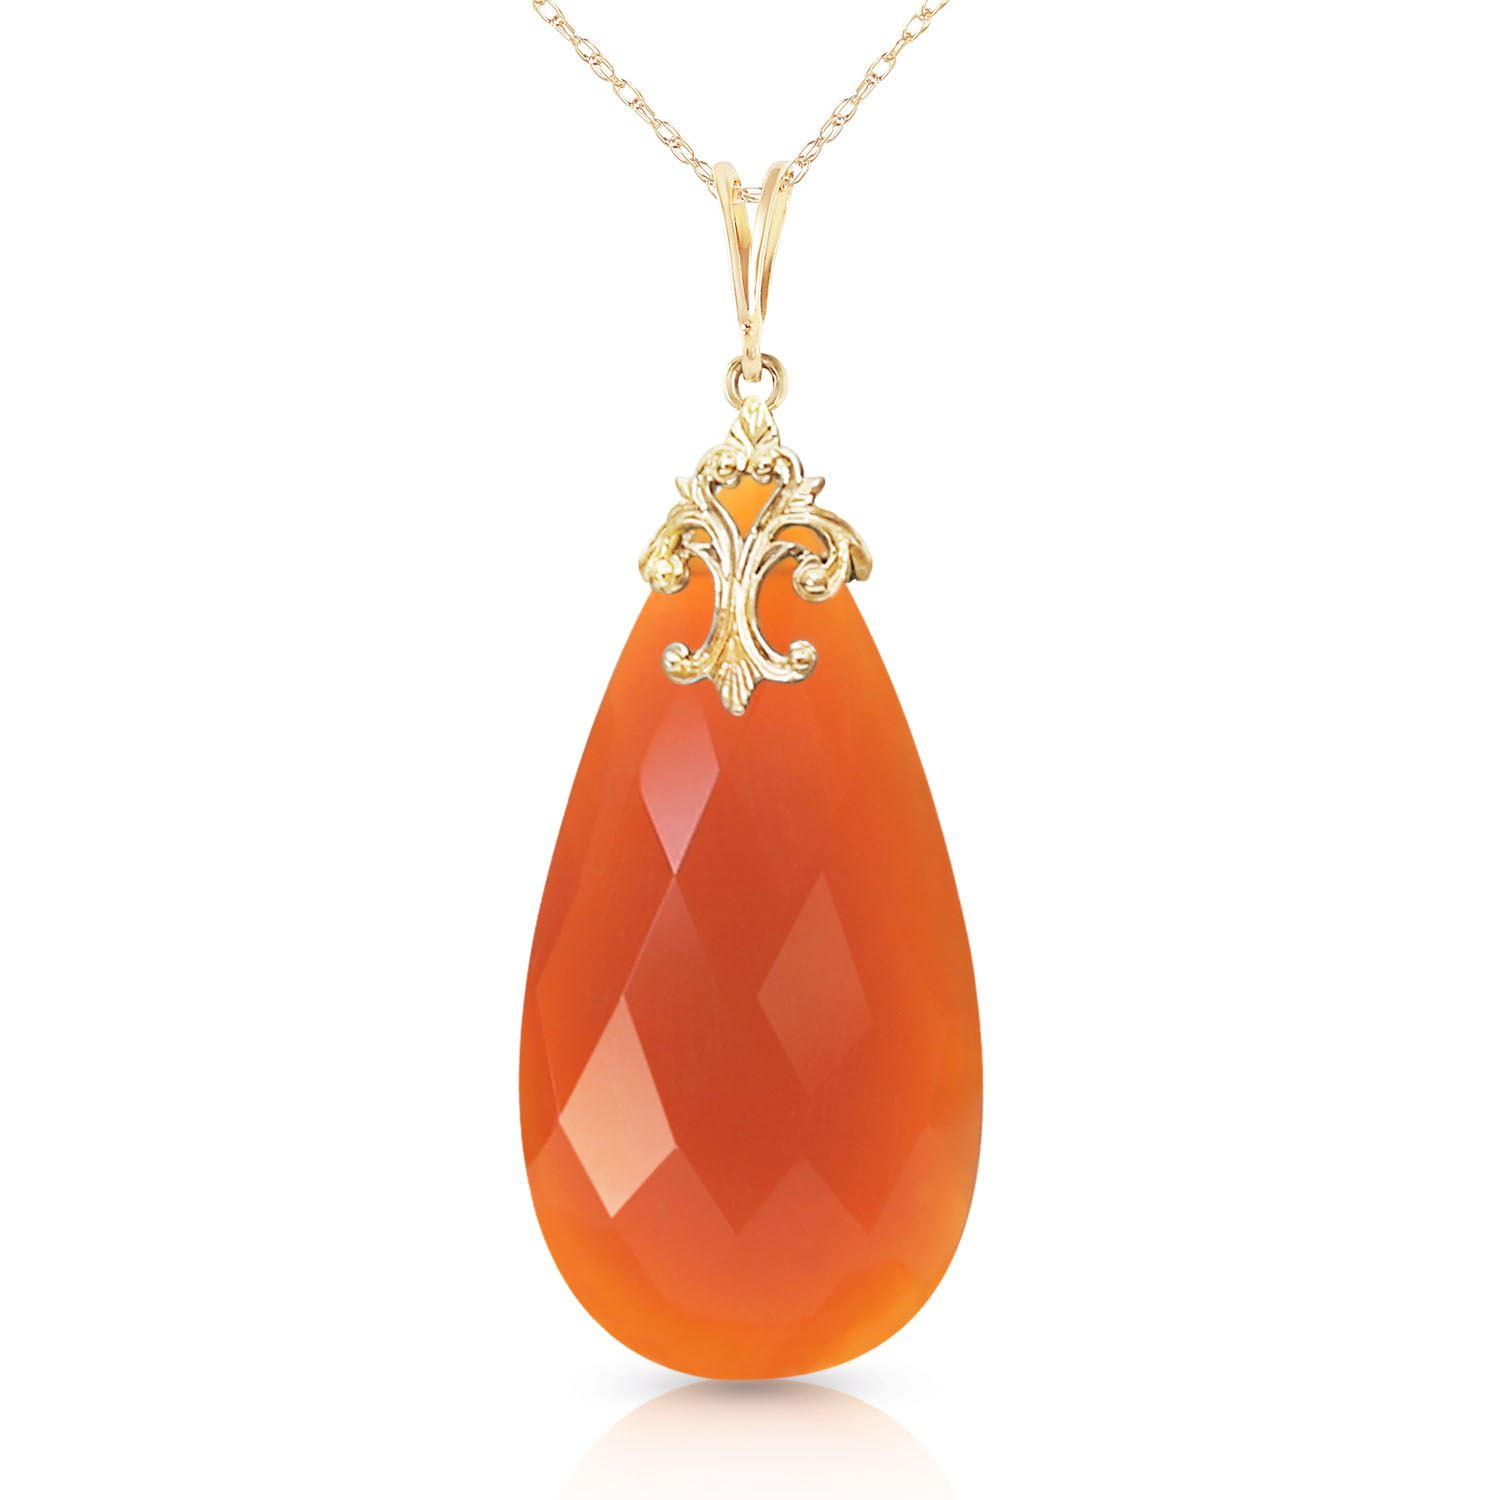 ALARRI 14K Solid Gold Necklace with Briolette 31x16 mm Reddish Orange Chalcedony with 20 Inch Chain Length. by ALARRI